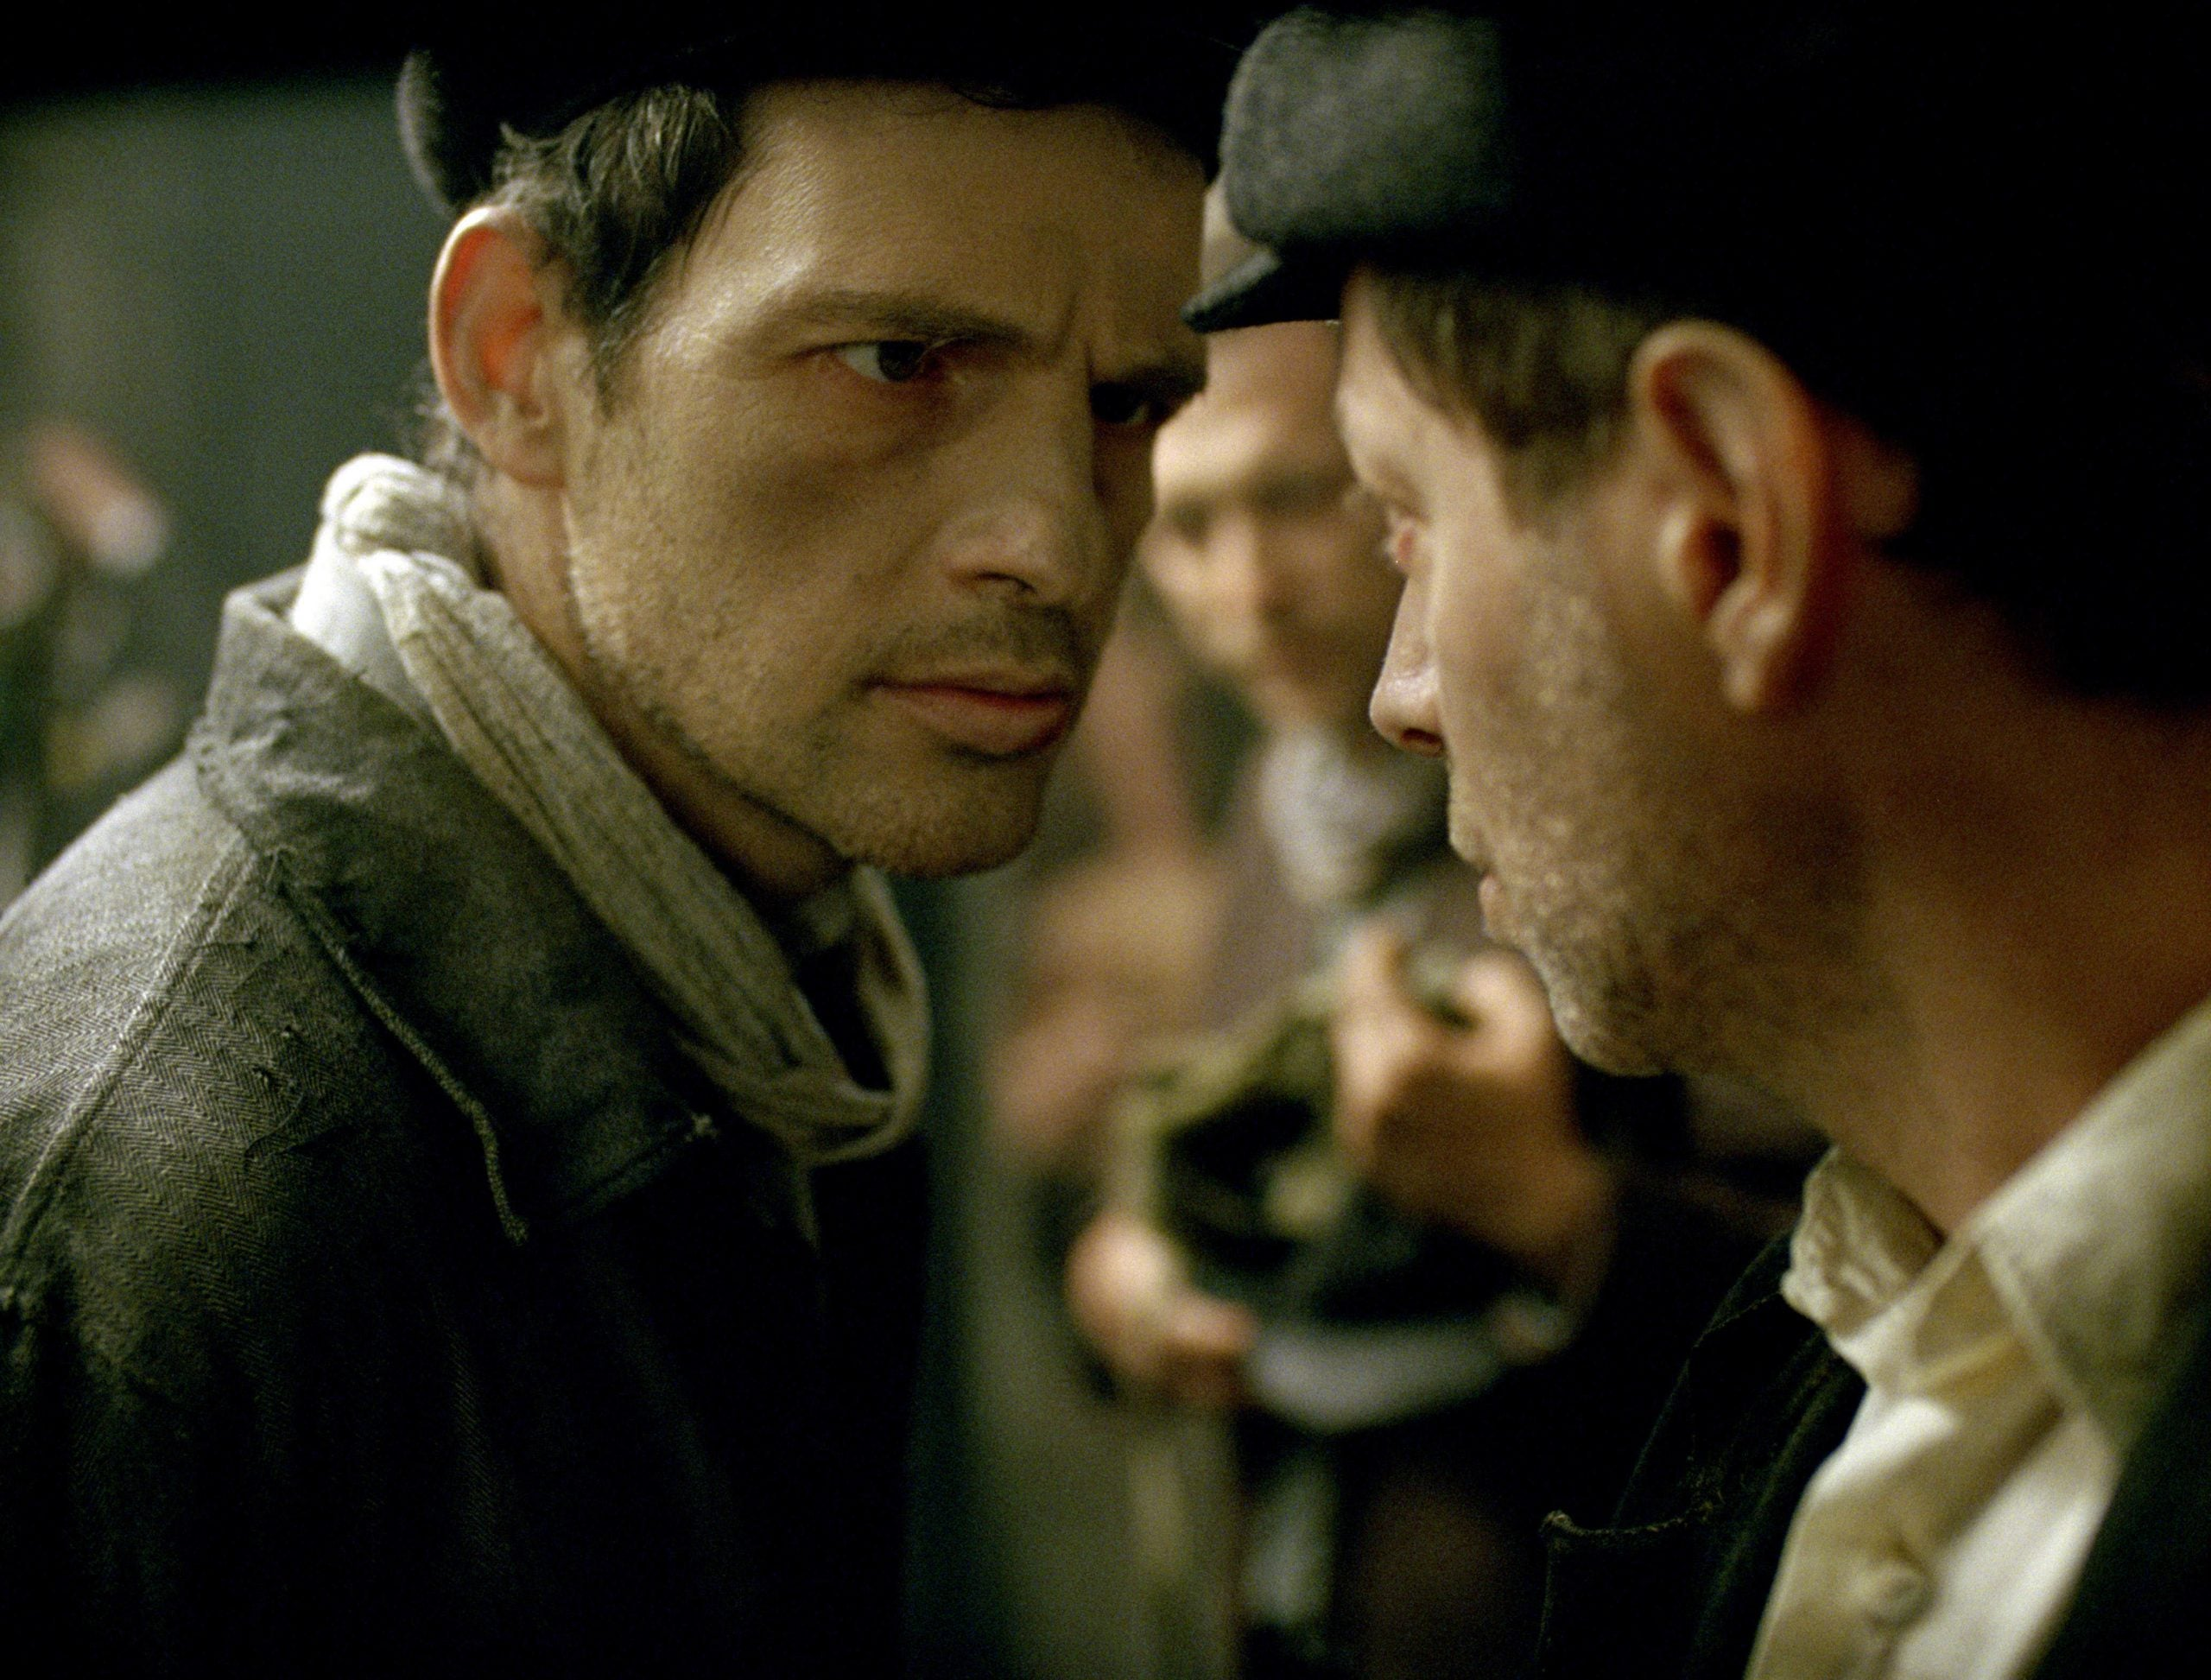 Son of Saul is rightly harrowing, but somehow transcends the barbarity of Auschwitz